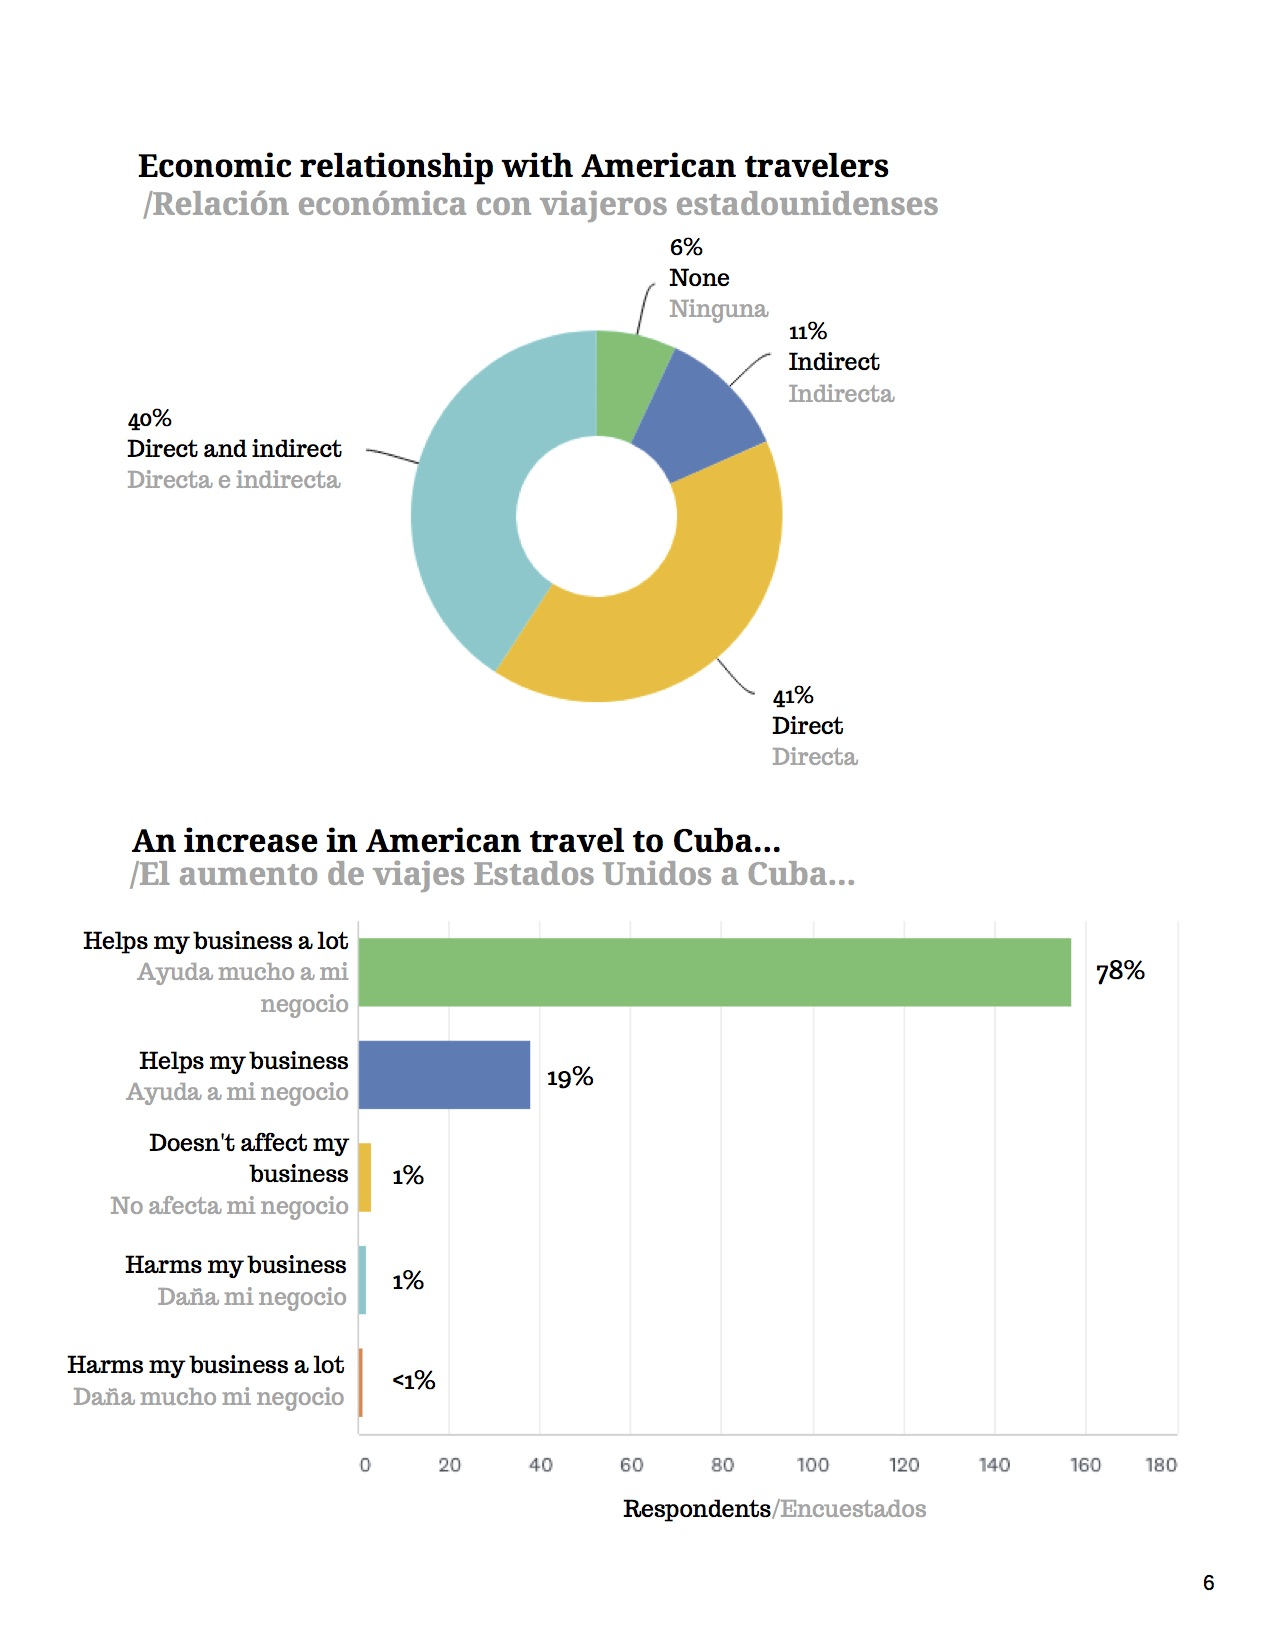 7May 2019 Survey Finds Cuban Private Sector Relies Heavily on American Visitors and Cubans Are _Very Worried_ About Impending Restrictions on Travel (1).jpg